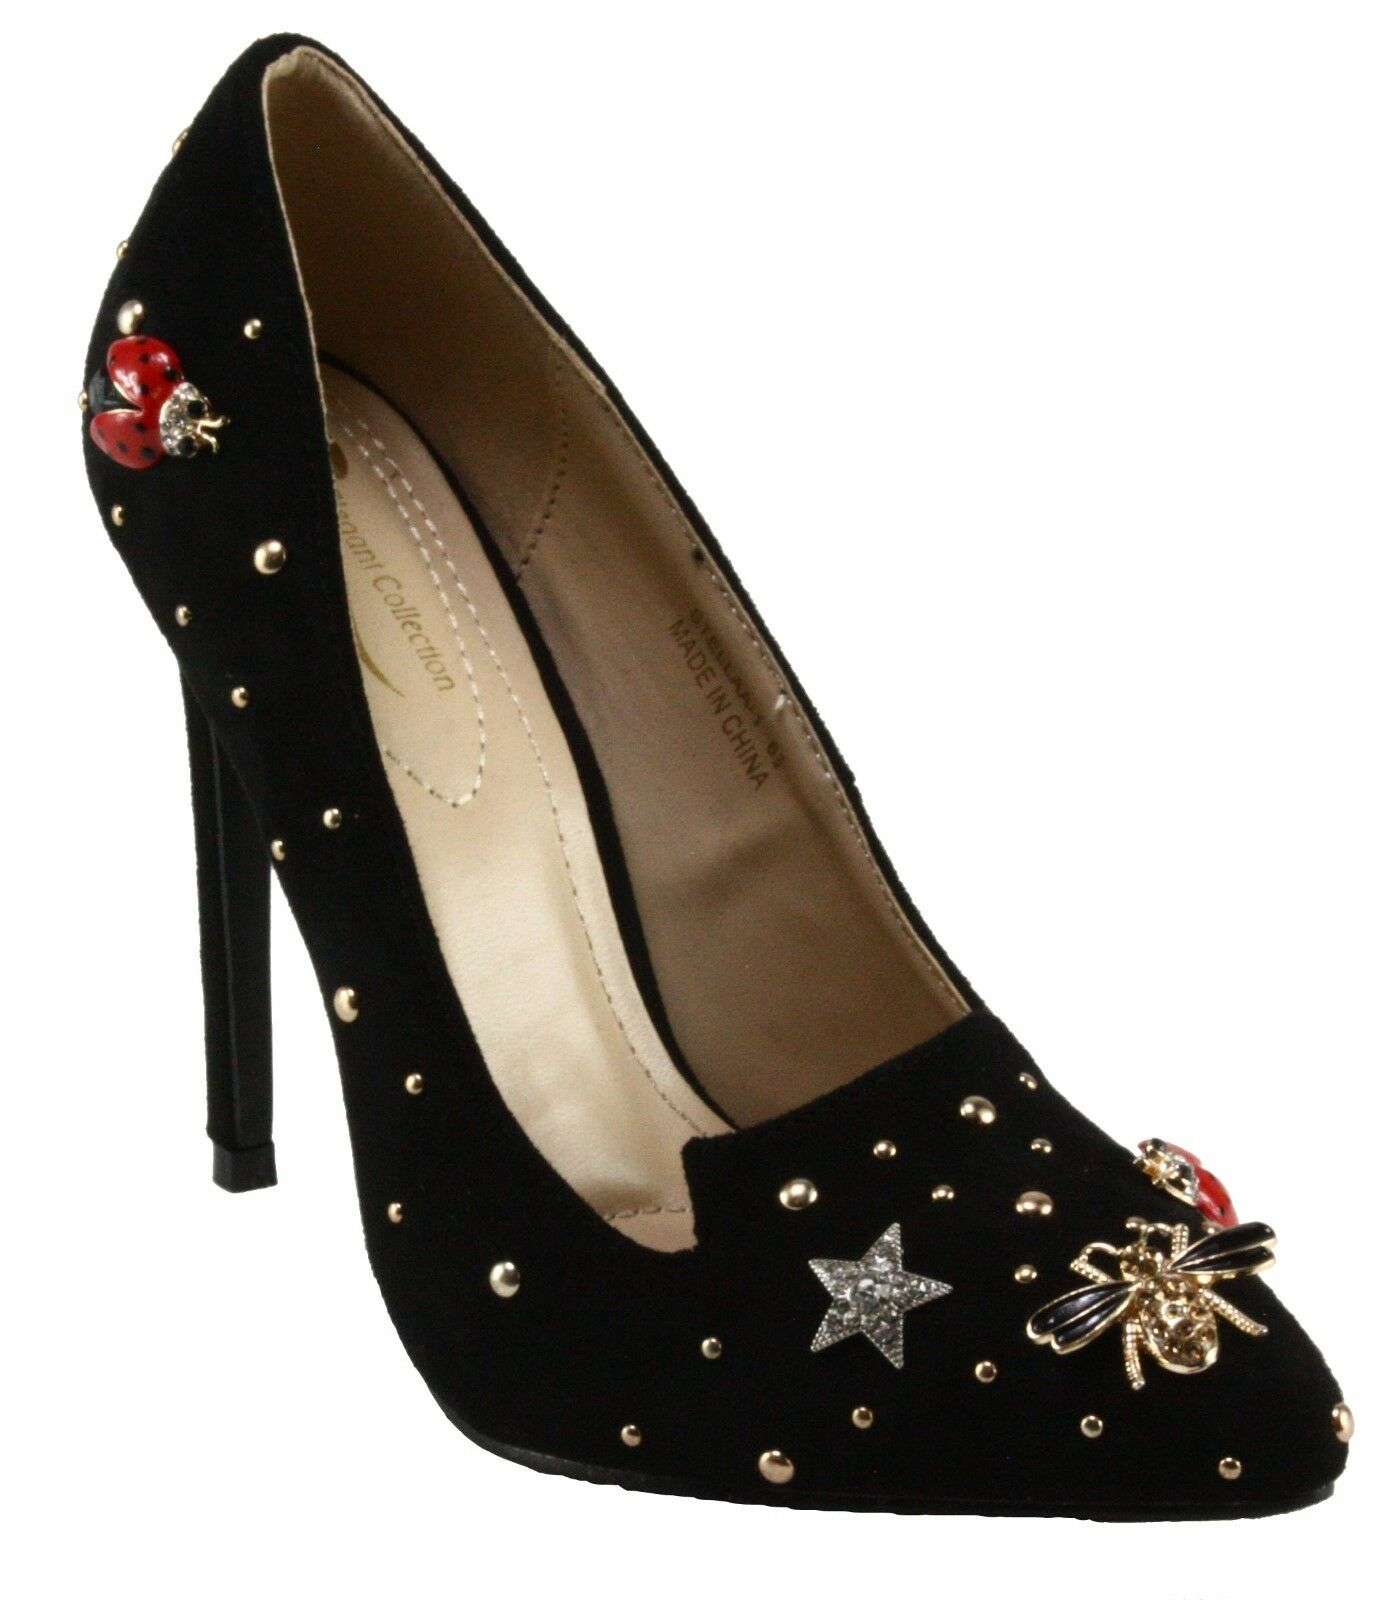 Elegant Stellaa-1 Faux Suede Pointy-toe Metallic Studded Decor High Heel Pumps